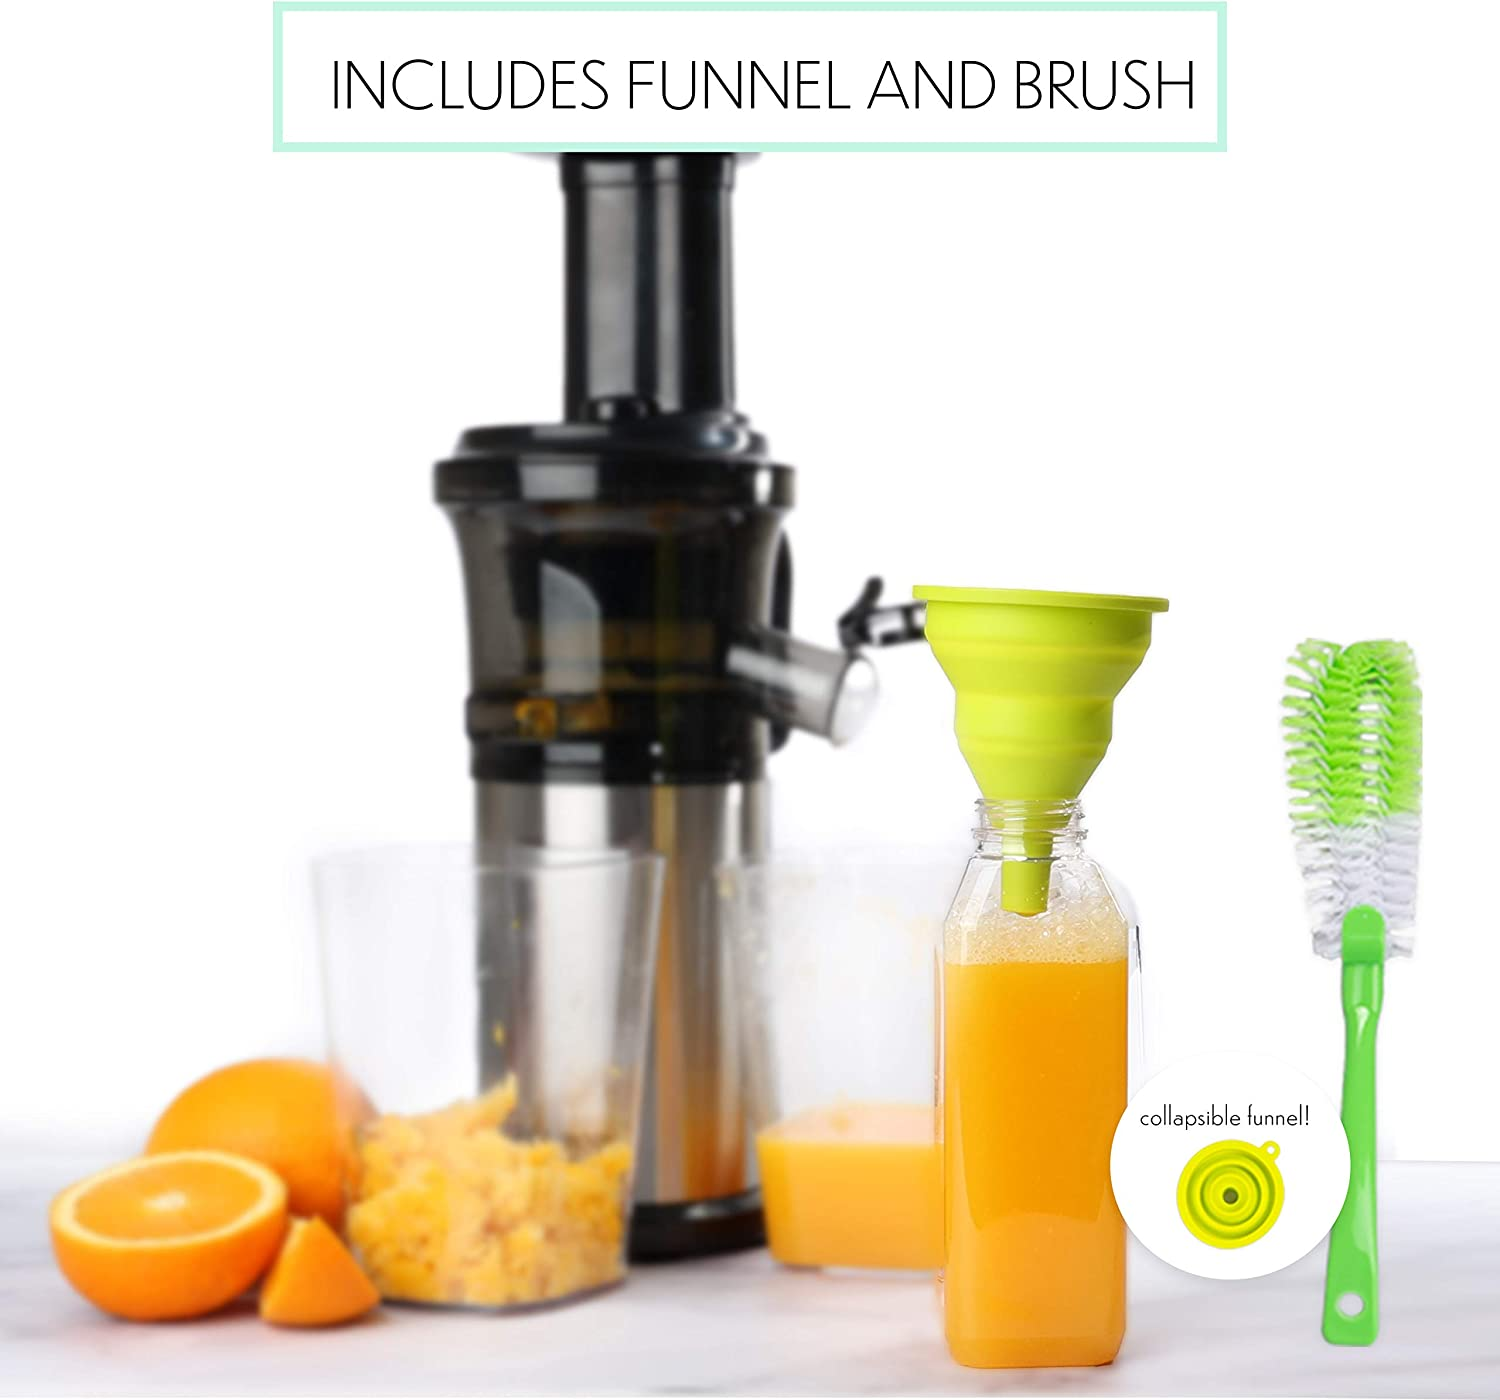 Cold Press Masticating Juicer With 16 oz Plastic Juice Bottles With Black Caps And Juicing Recipe Book Includes Funnel And Brush